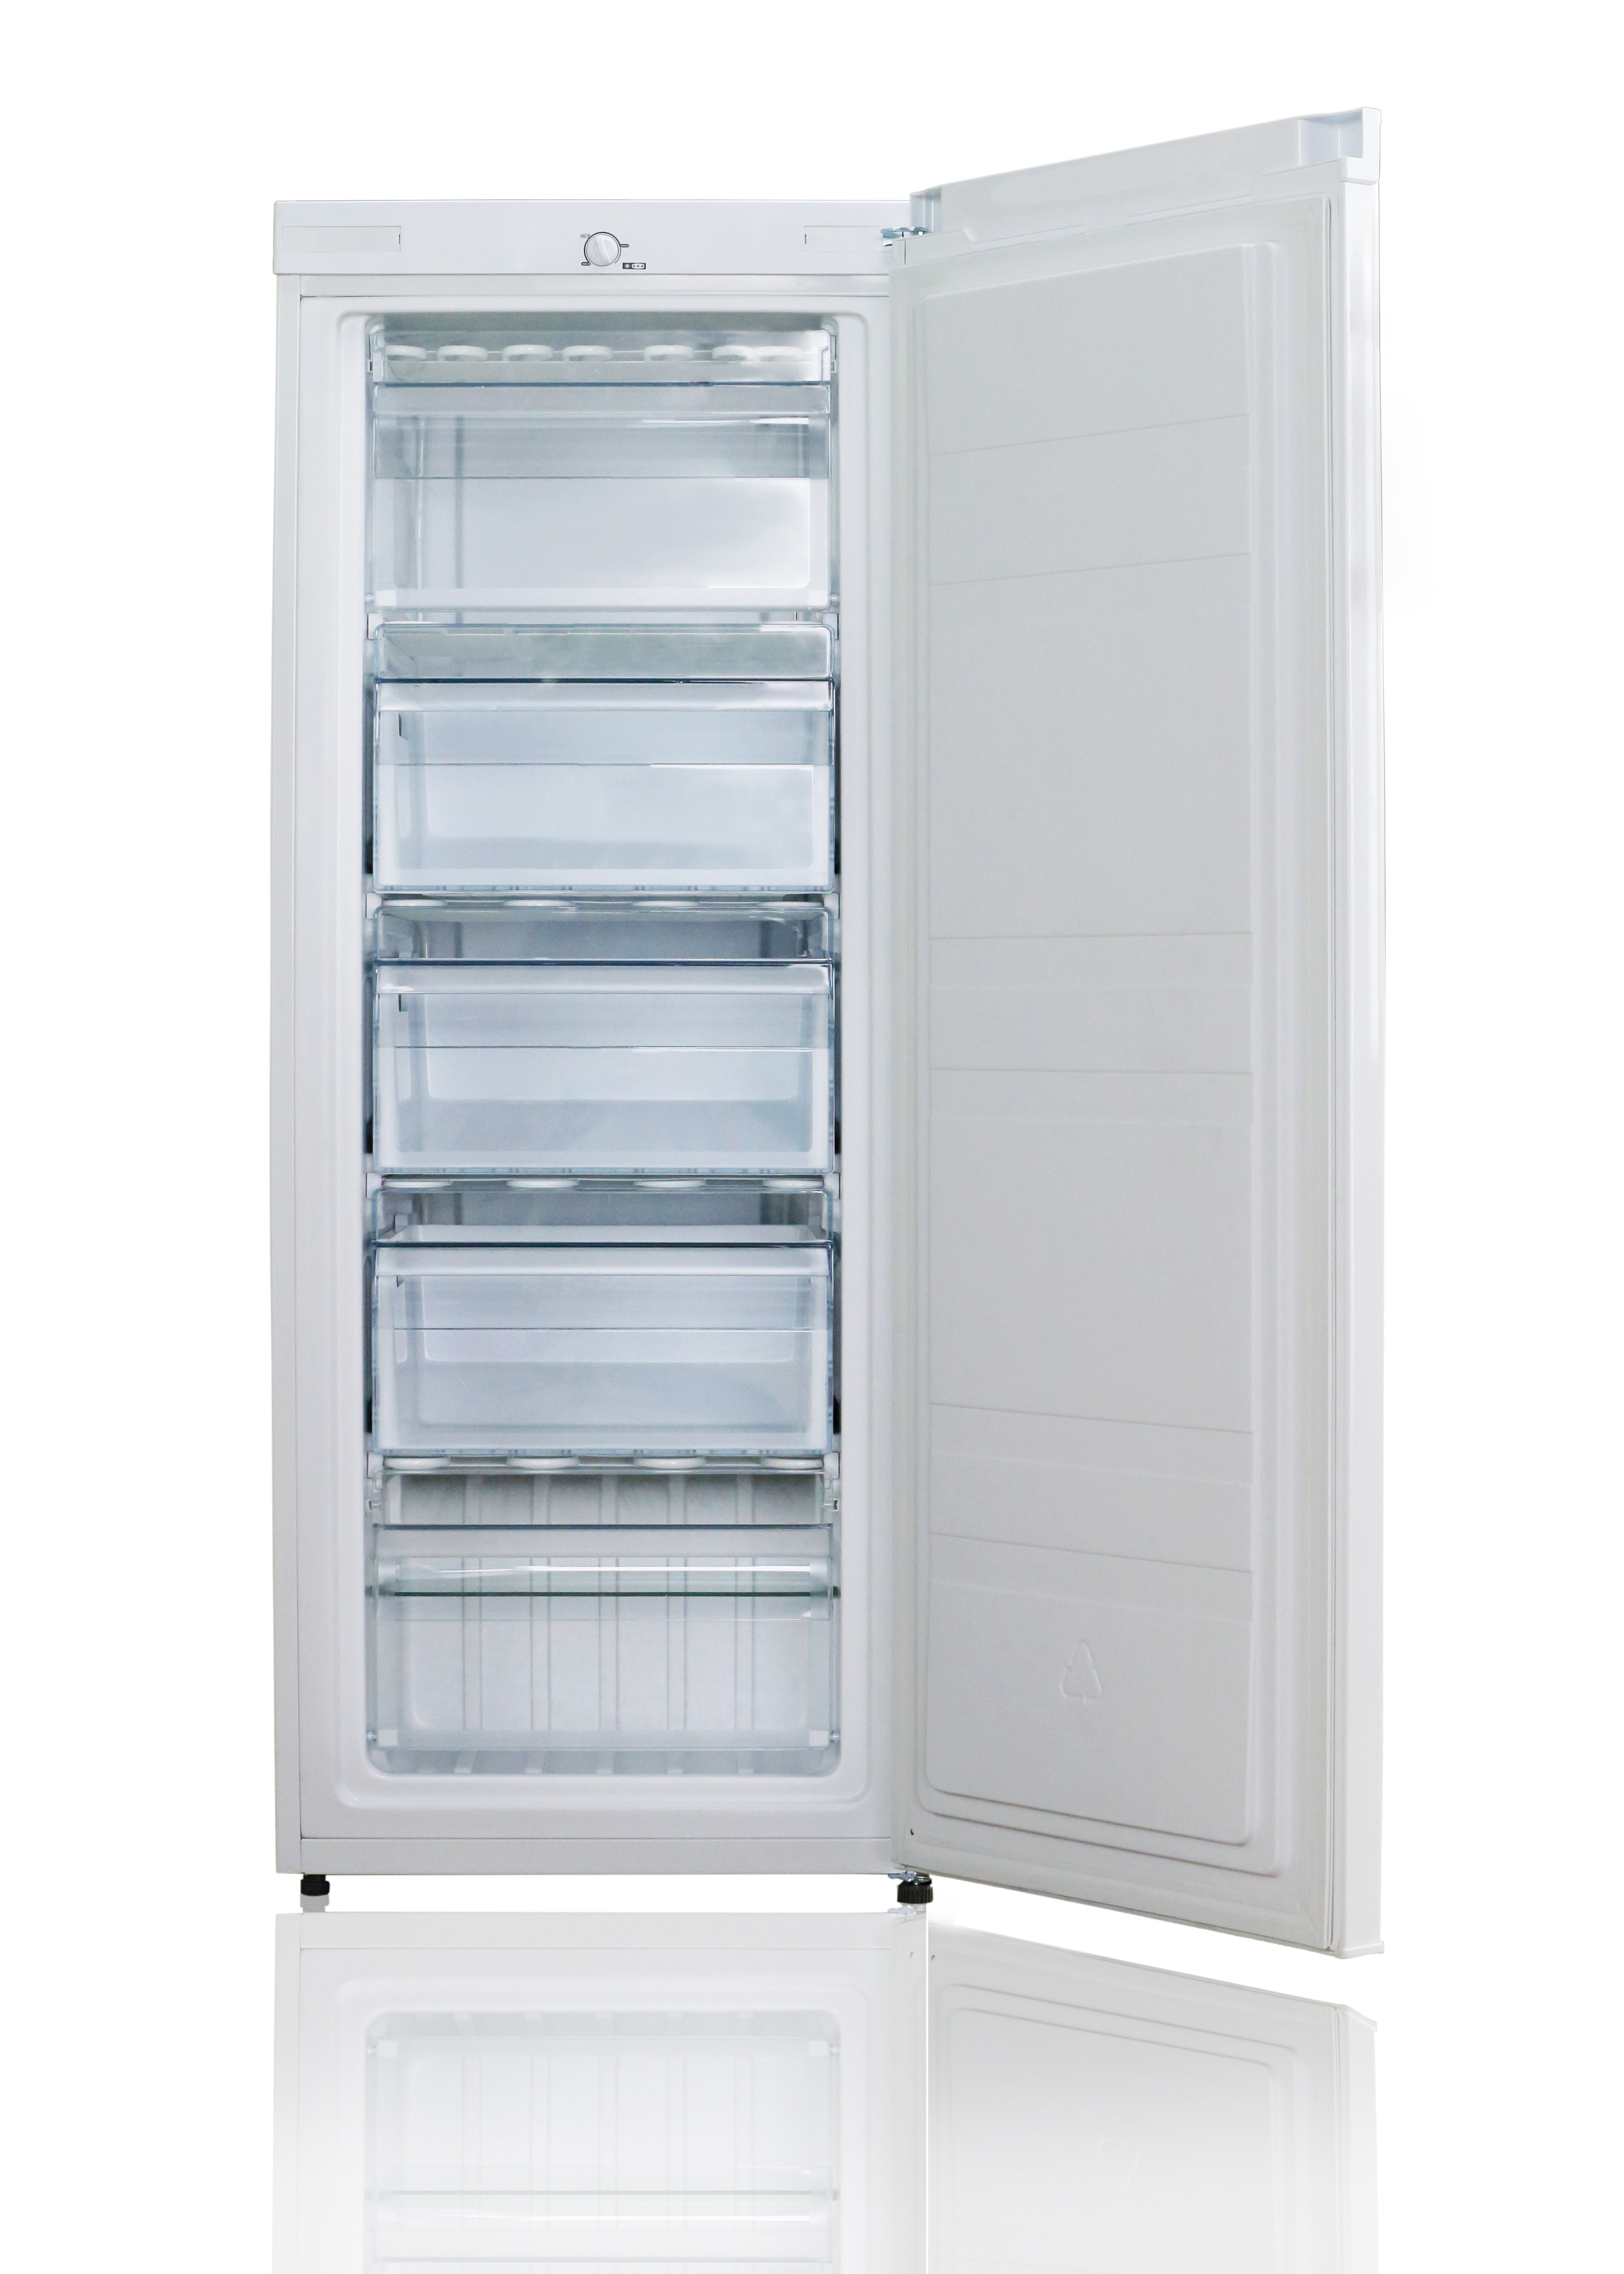 Upright Freezers Perth Details About New Esatto Euf172w 172l Upright Freezer